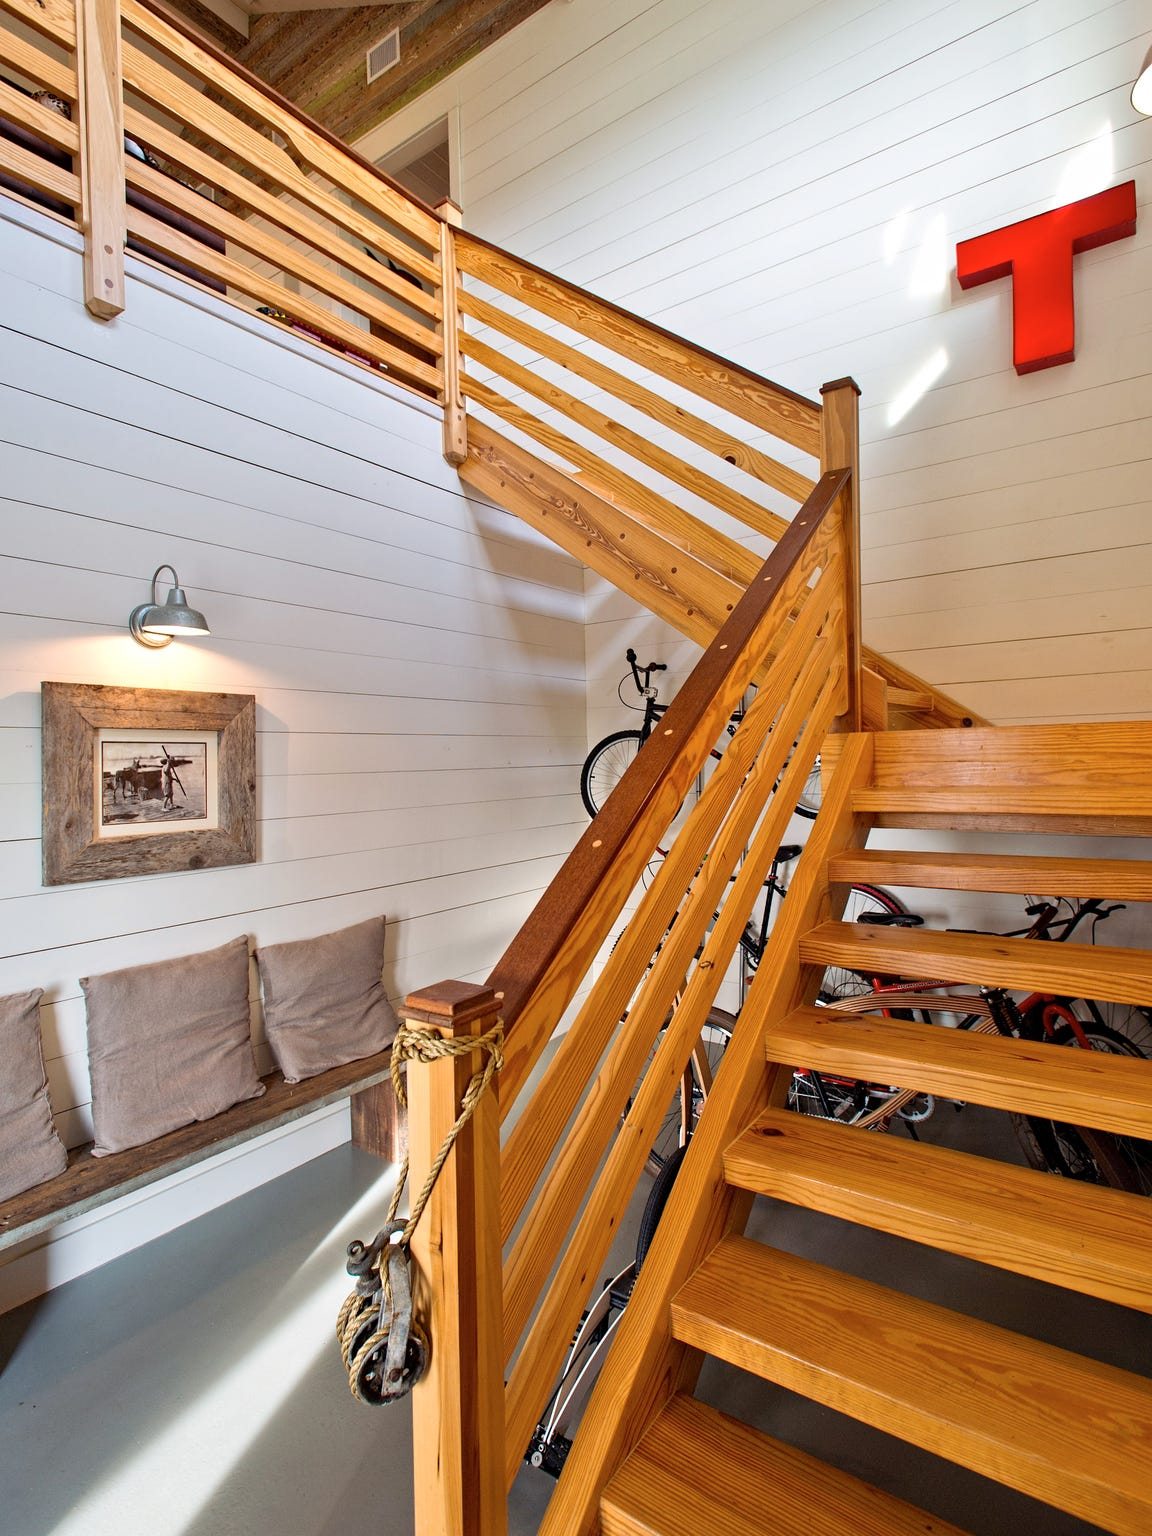 The homeowner/builder's hand crafted stairway from